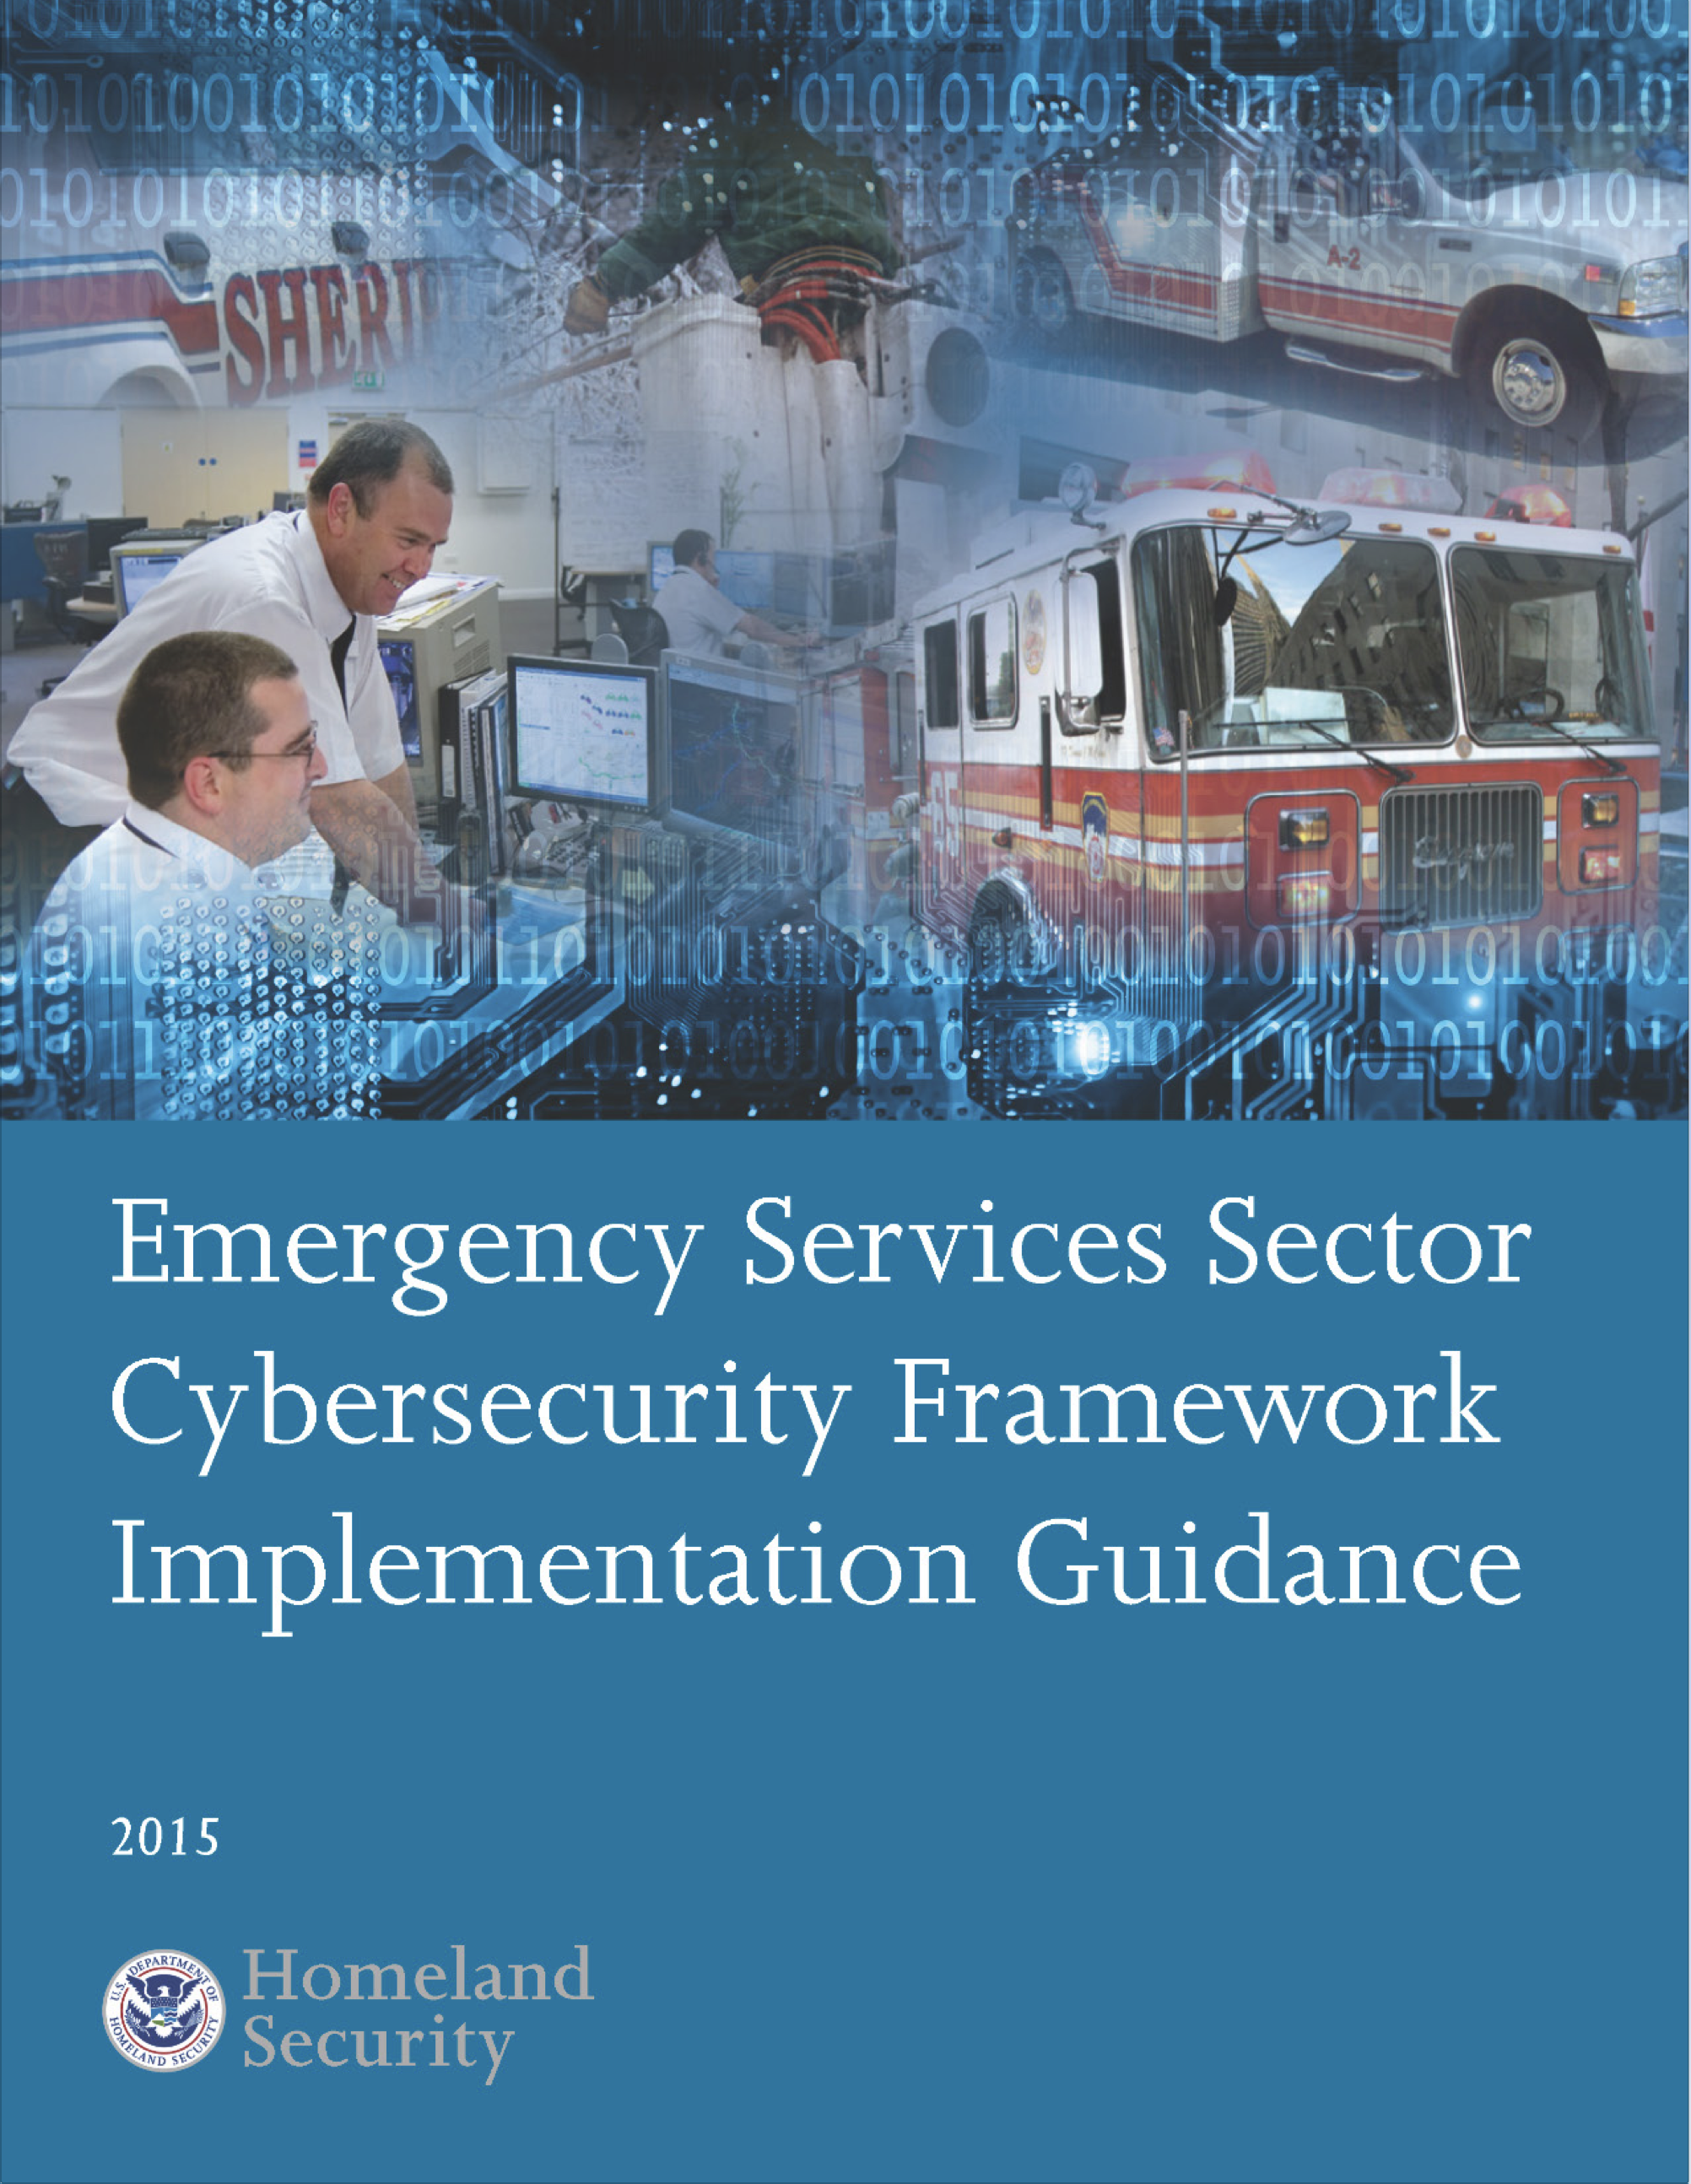 Emergency Services Sector-1.png